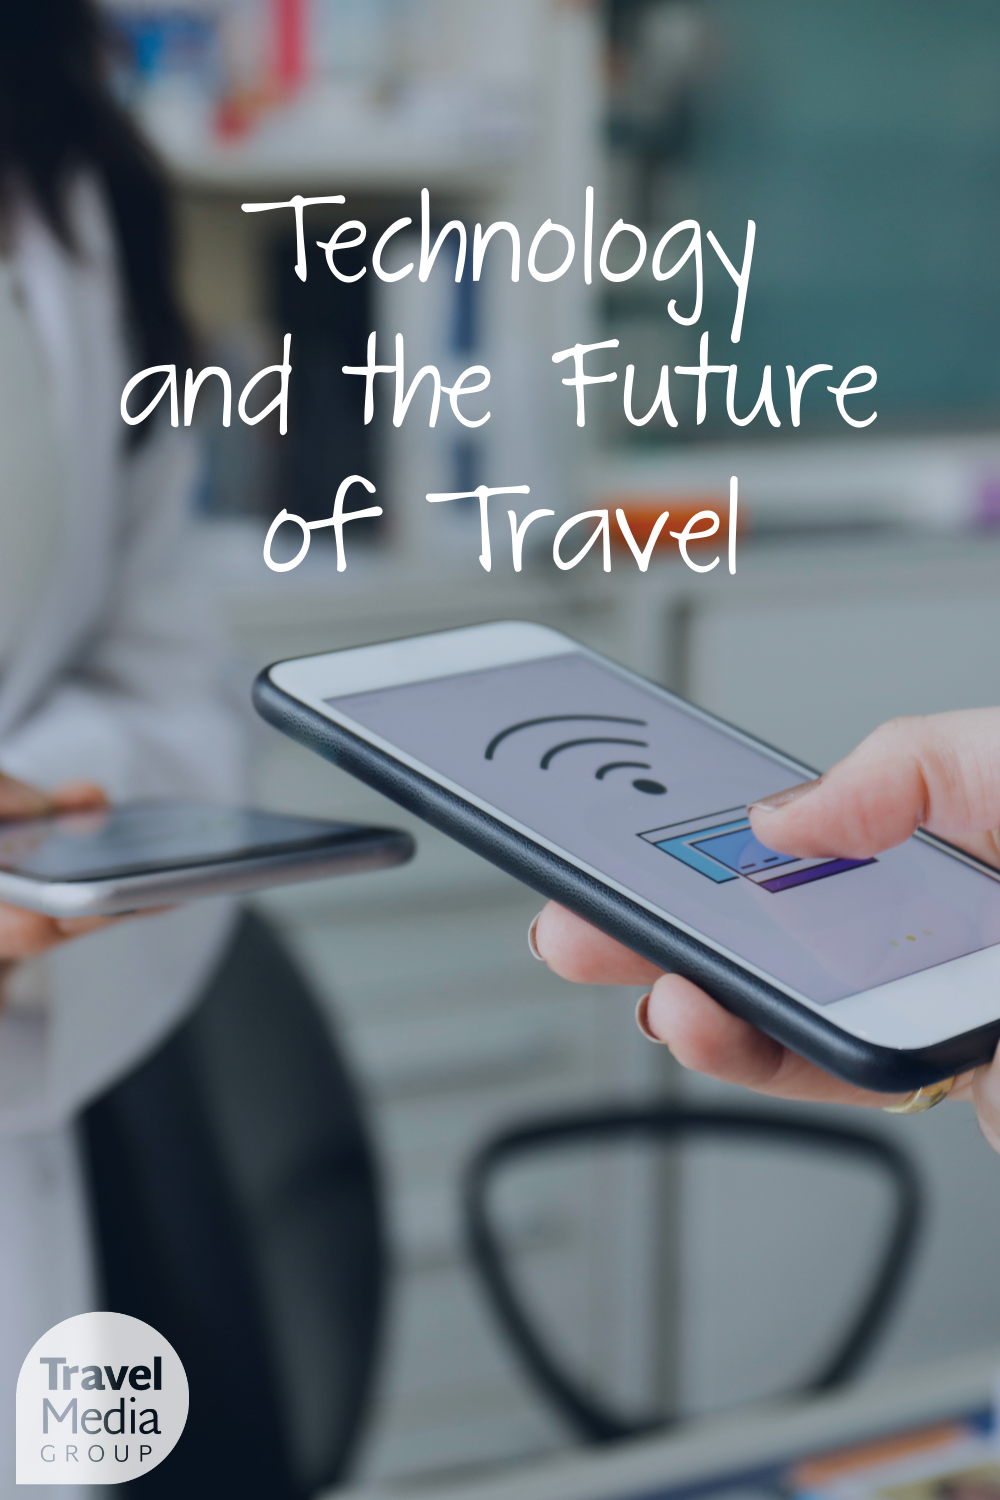 The future of travel will rely on technology; get ideas for how to innovate at your hotel.